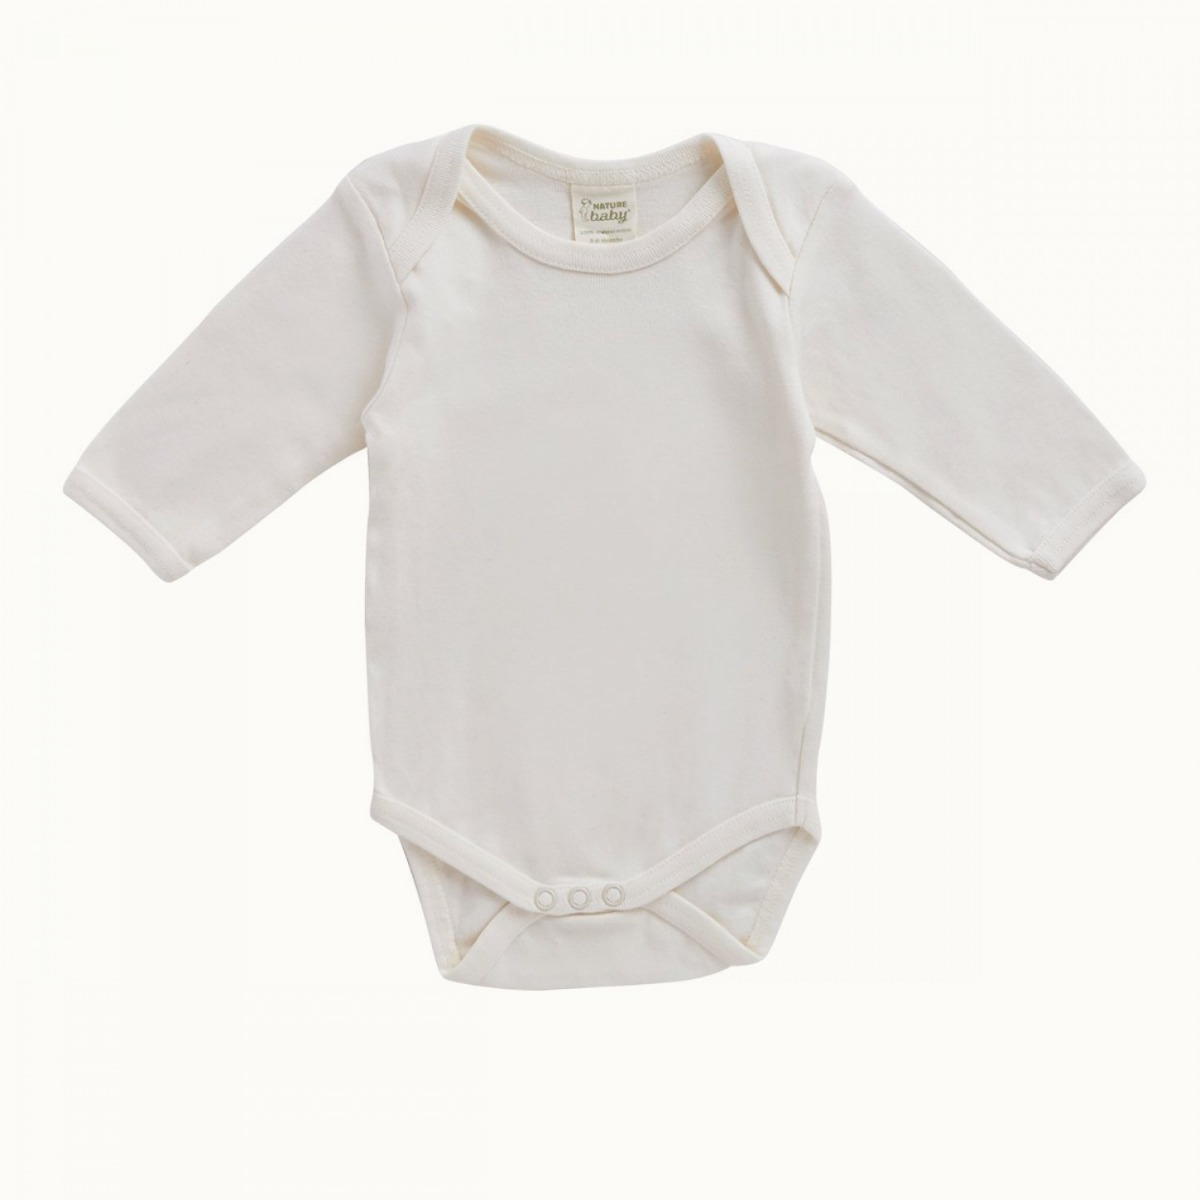 Nature Baby Organic Cotton Long Sleeve Bodysuit 0-3M